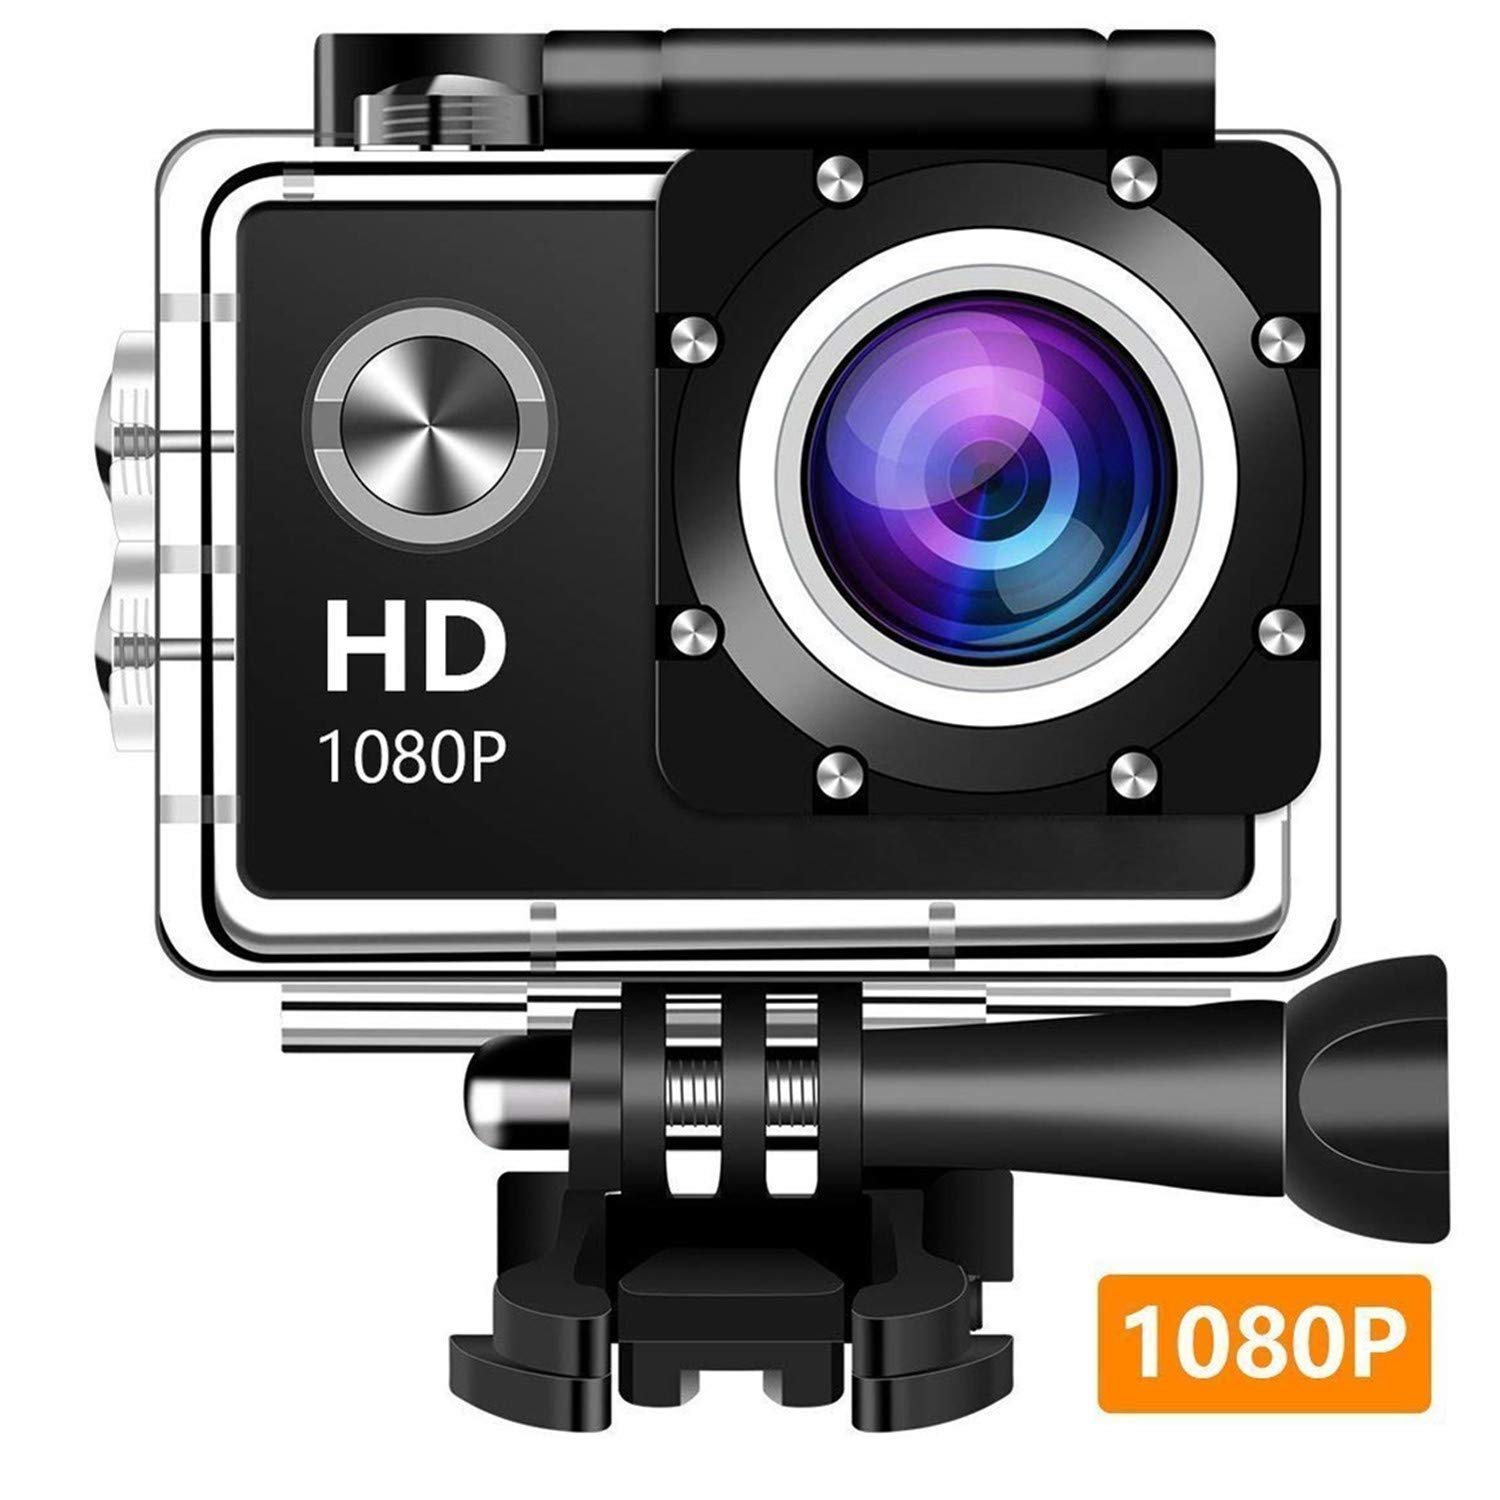 Action Camera, Wifxbot 1080P 12MP Sports Camera Full HD 2.0 Inch Action Cam 30m/98ft Underwater Waterproof Camera with Mounting Accessories Kit